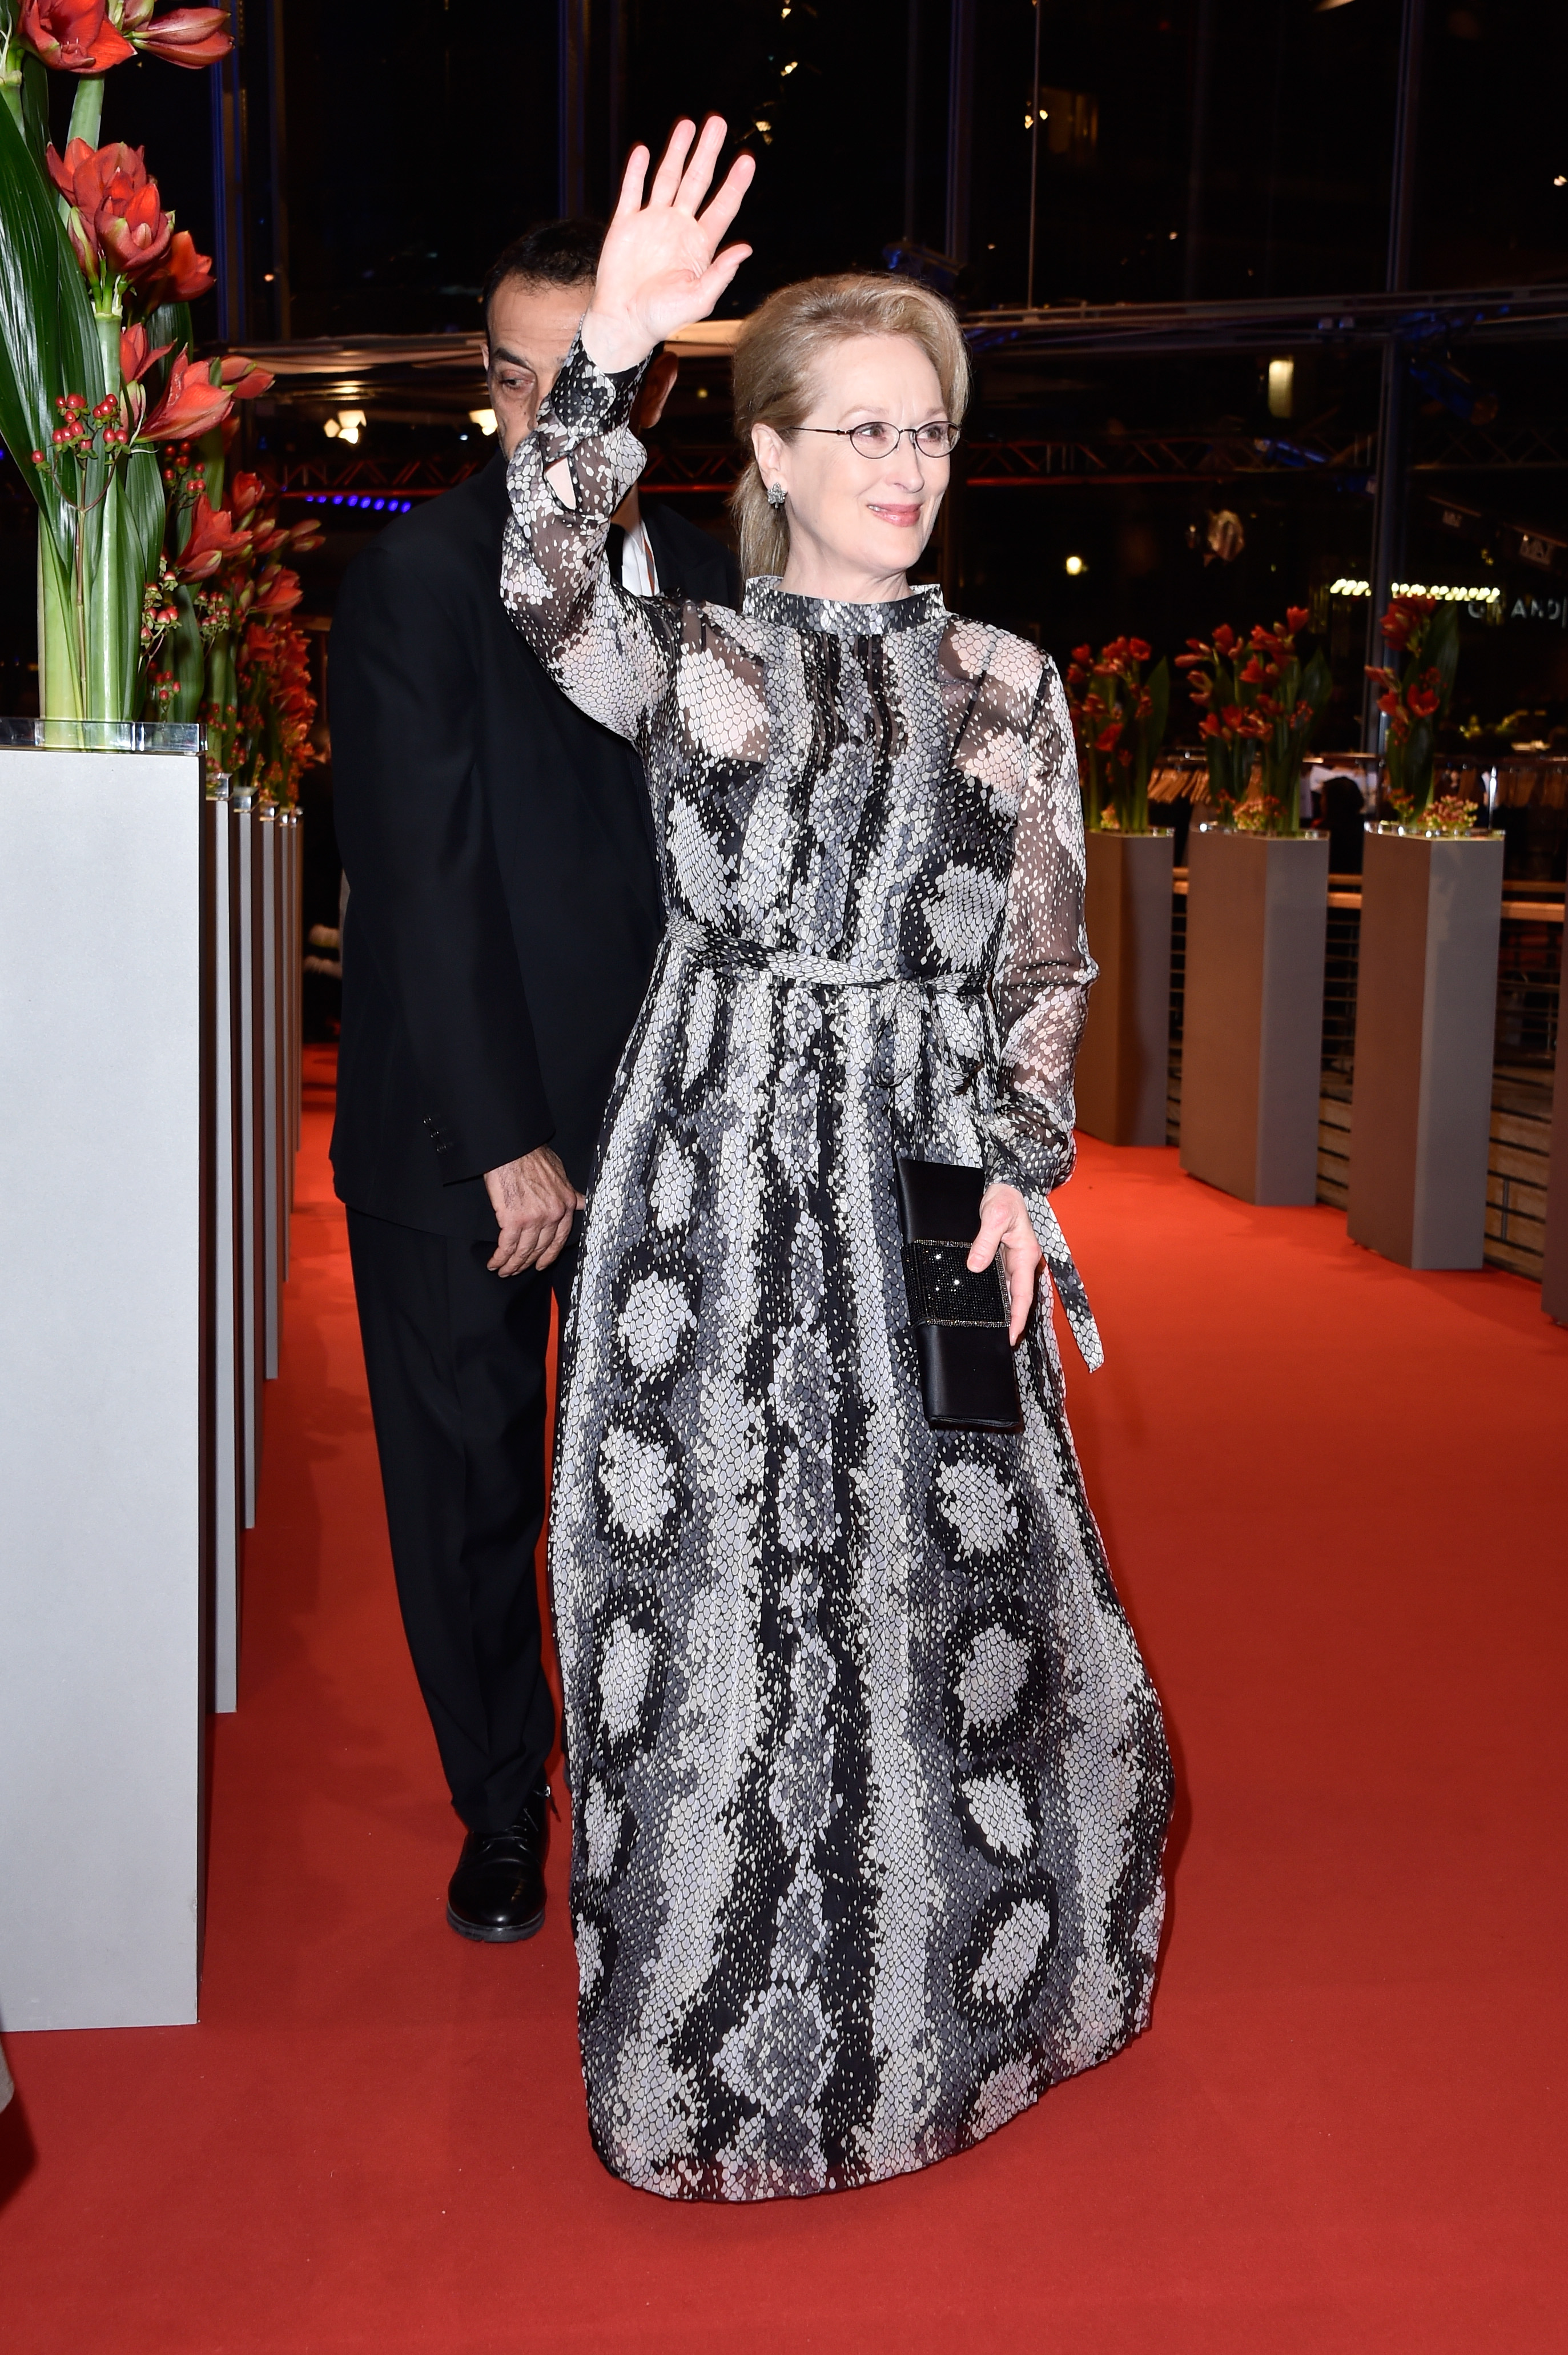 BERLIN, GERMANY - FEBRUARY 11: Meryl Streep attends the 'Hail, Caesar!' premiere during the 66th Berlinale International Film Festival Berlin at Berlinale Palace on February 11, 2016 in Berlin, Germany. (Photo by Pascal Le Segretain/Getty Images)